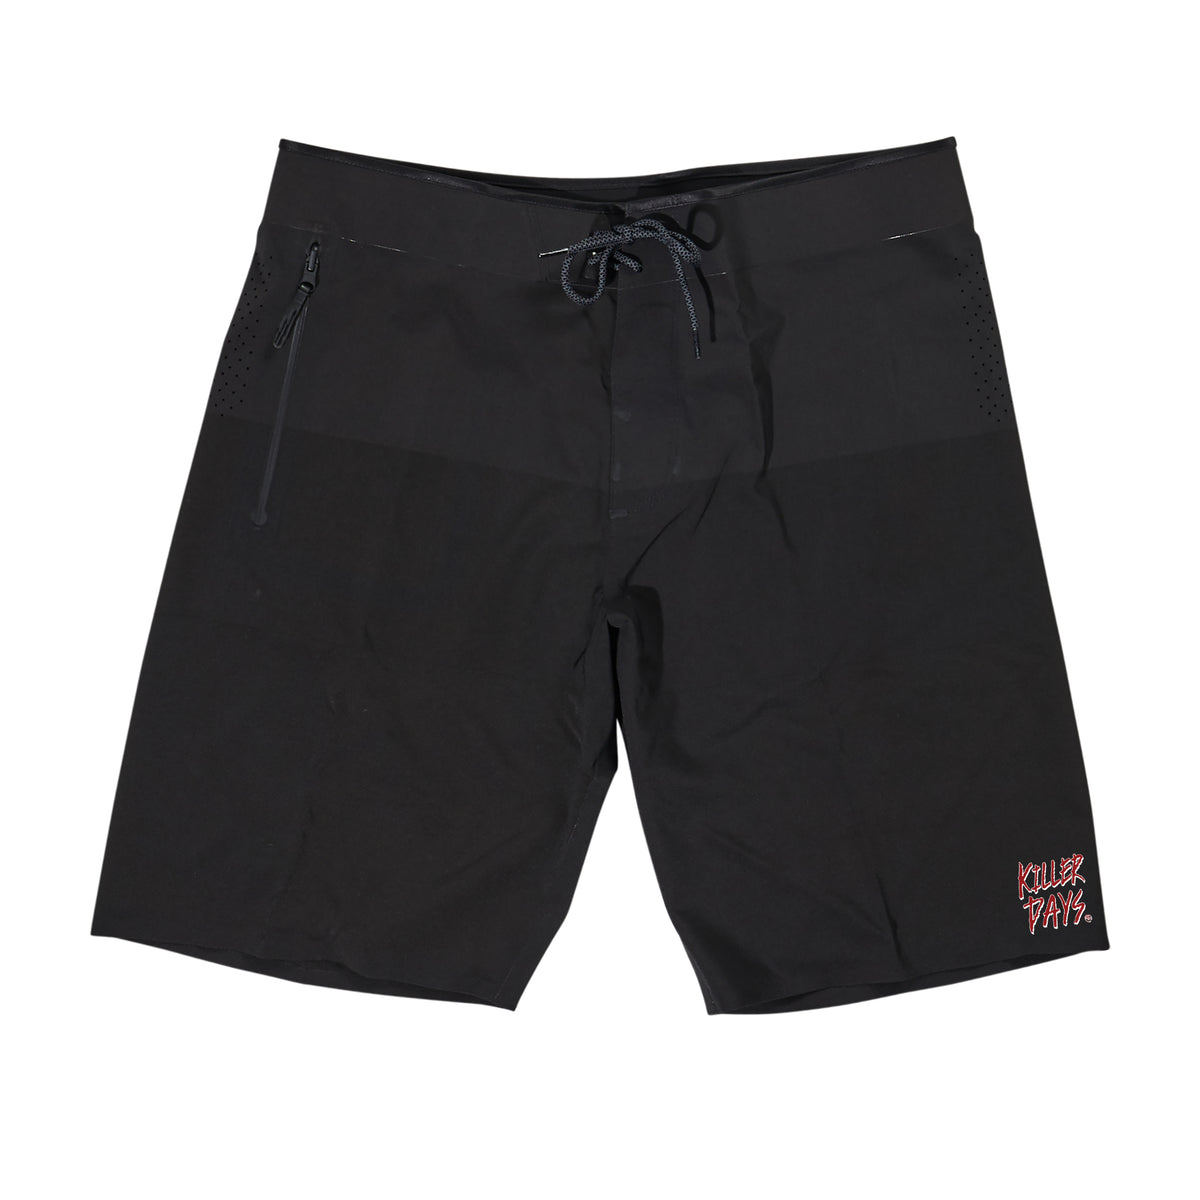 Found® Killer Days® Woven Engineered Board Shorts